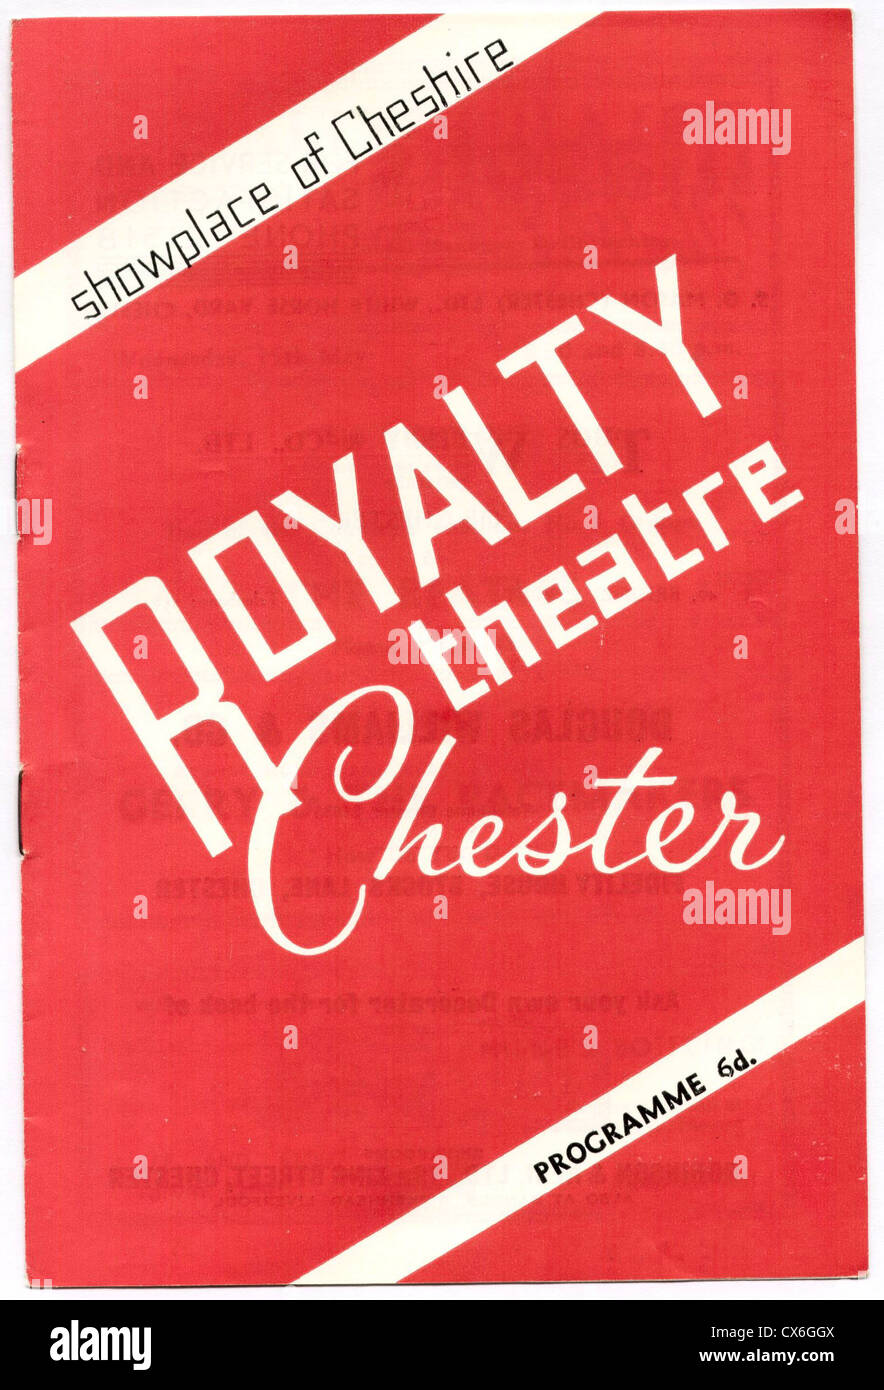 000651 - The Beatles 1963 Chester Concert Programme - Stock Image